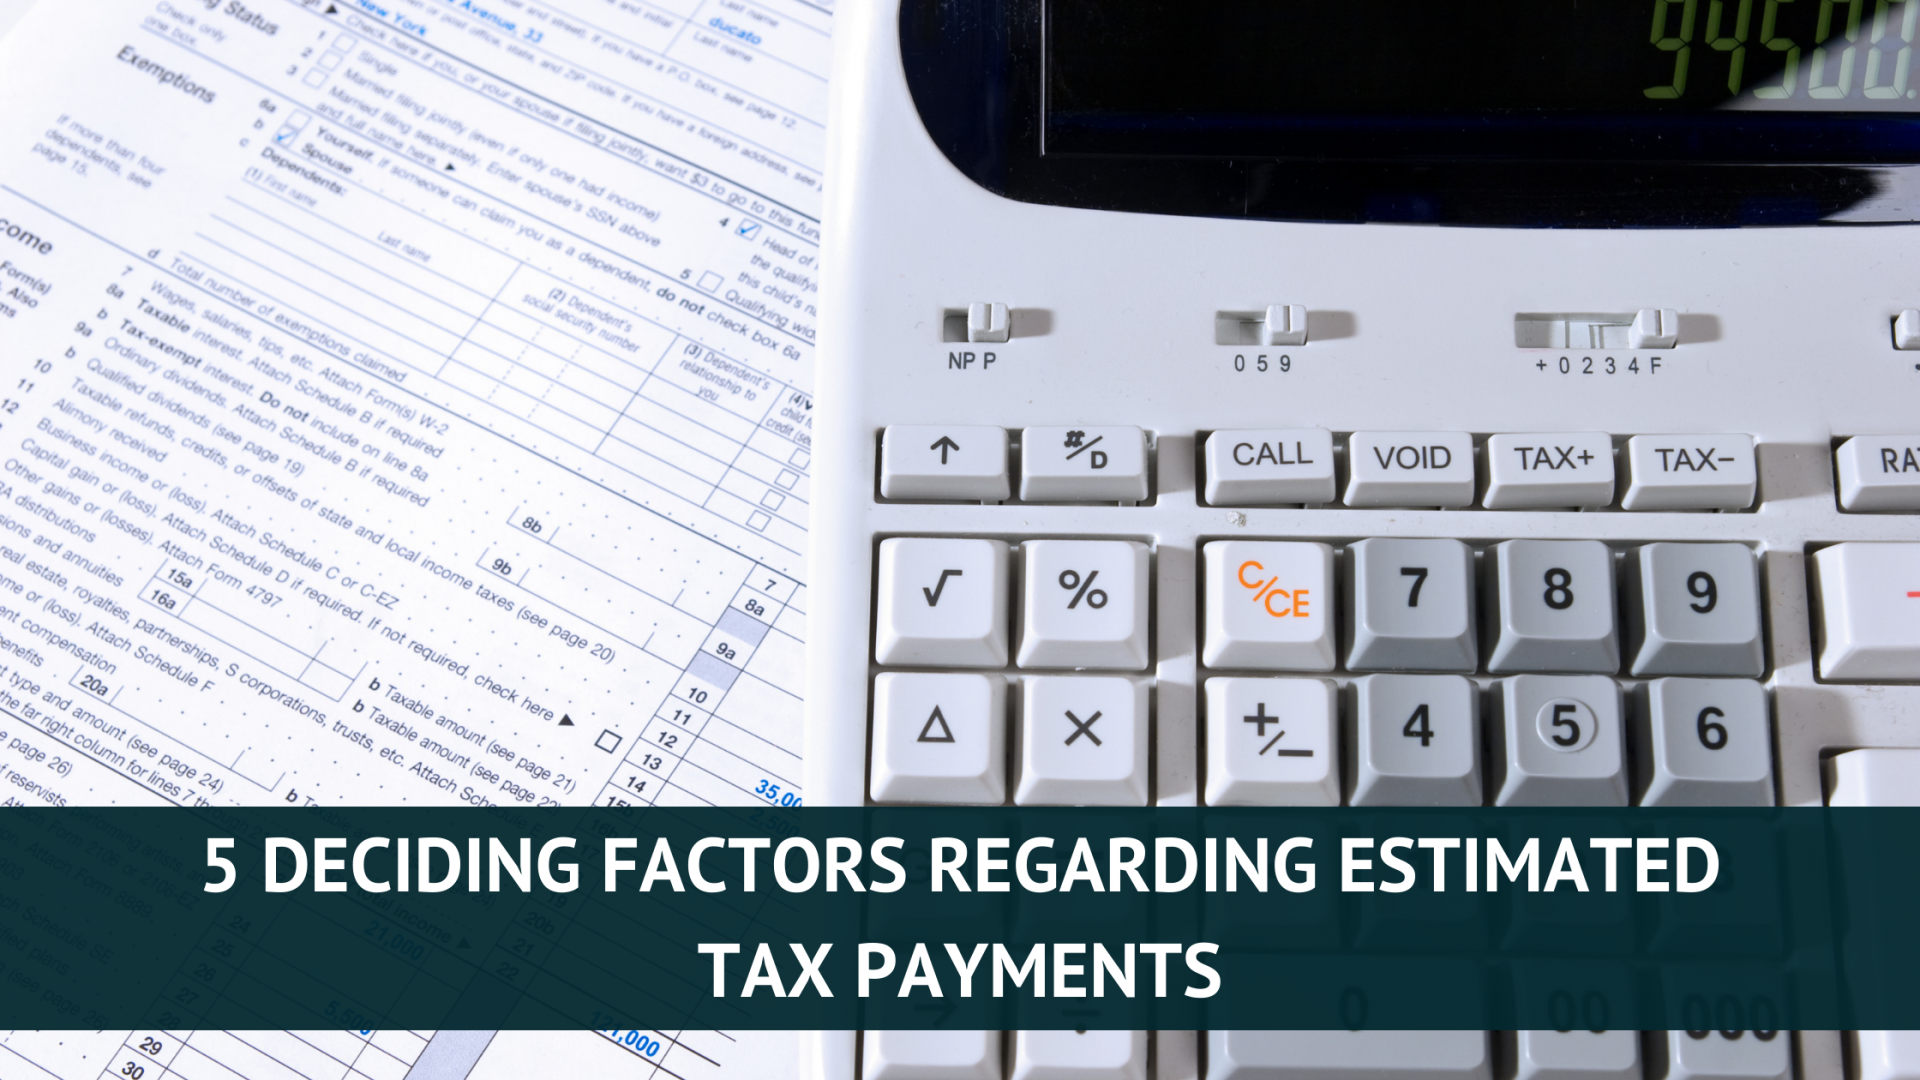 5 Determining Factors on When to Make Estimated Tax Payments